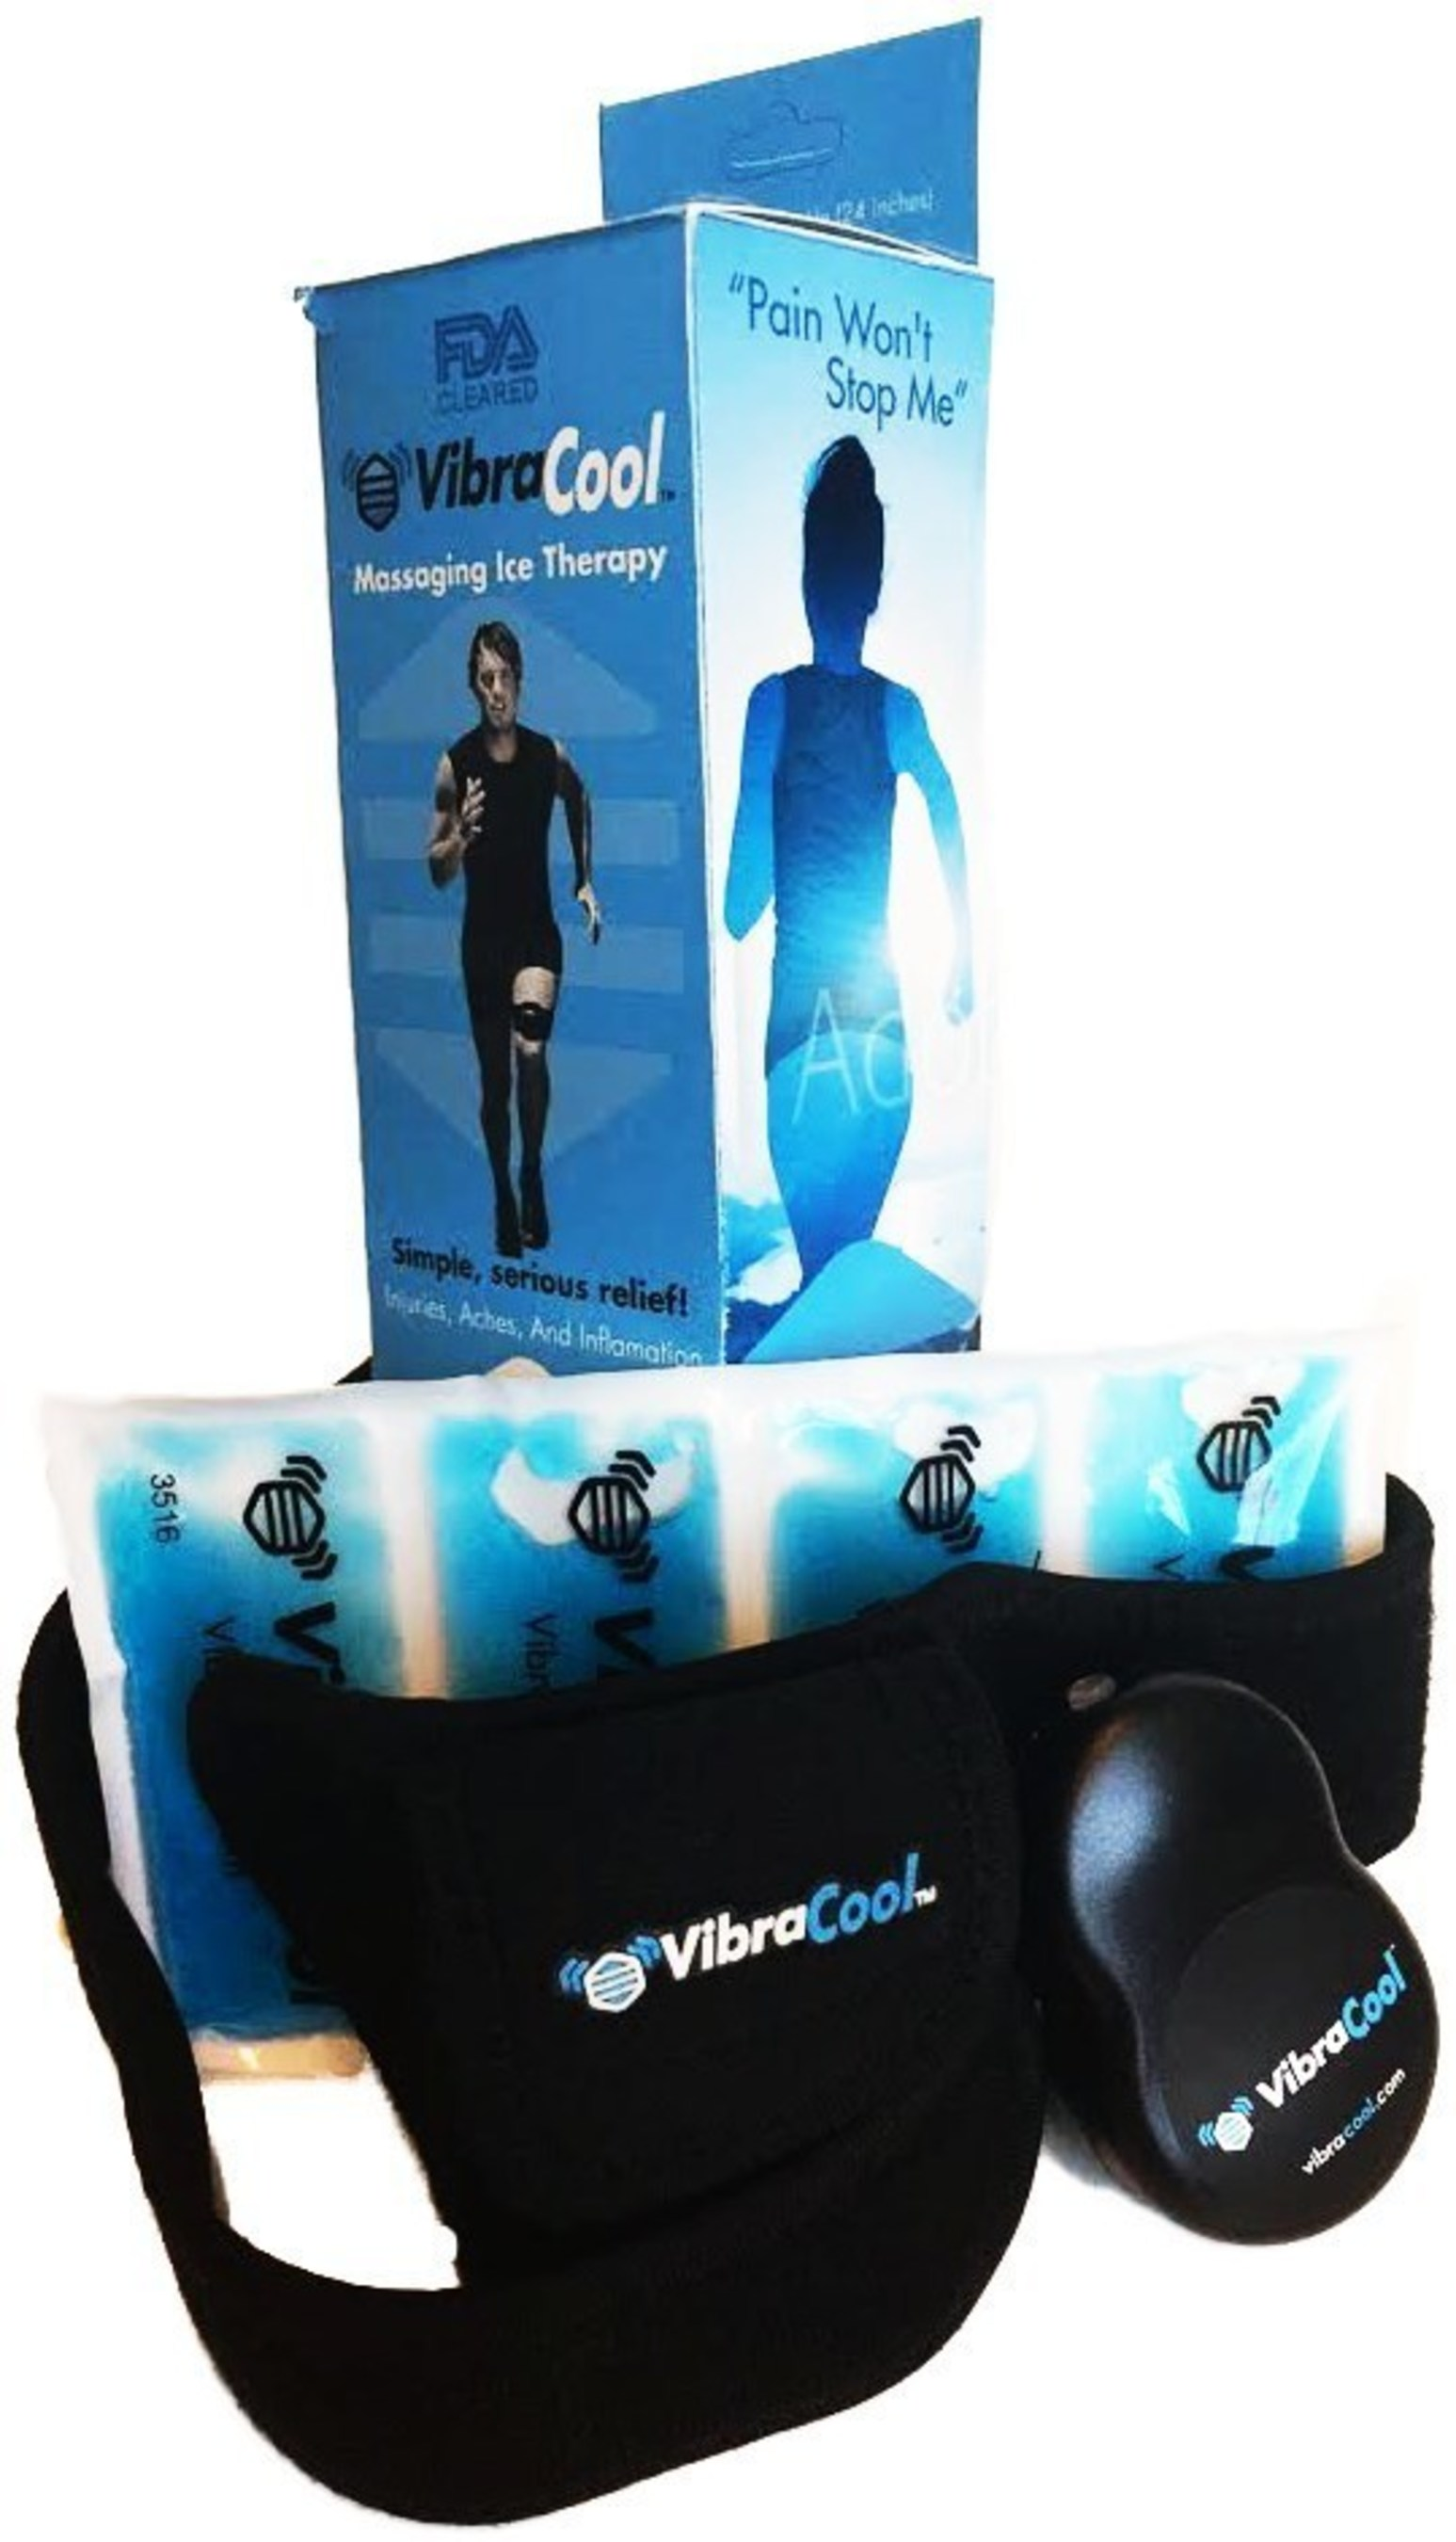 VibraCool(R)'s Cool-Pulse(TM) technology combines high frequency massage and ice in a product optimized for athletes and chronic joint pain sufferers.